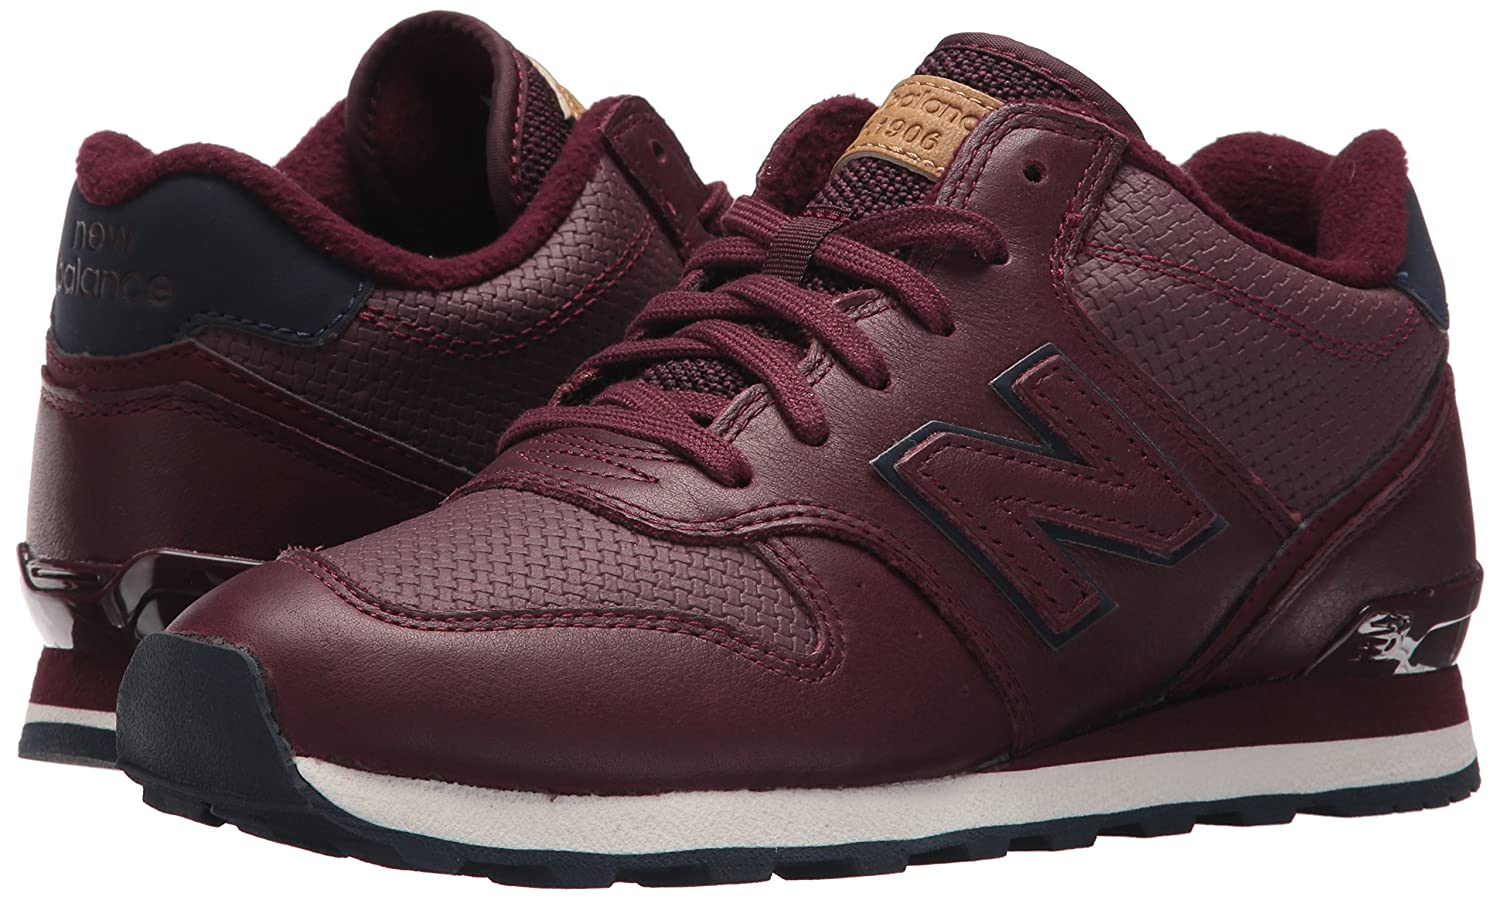 New Balance Women's 696 V1 Sneaker B01N3C1NZI 9.5 B(M) US|Chocolate Cherry